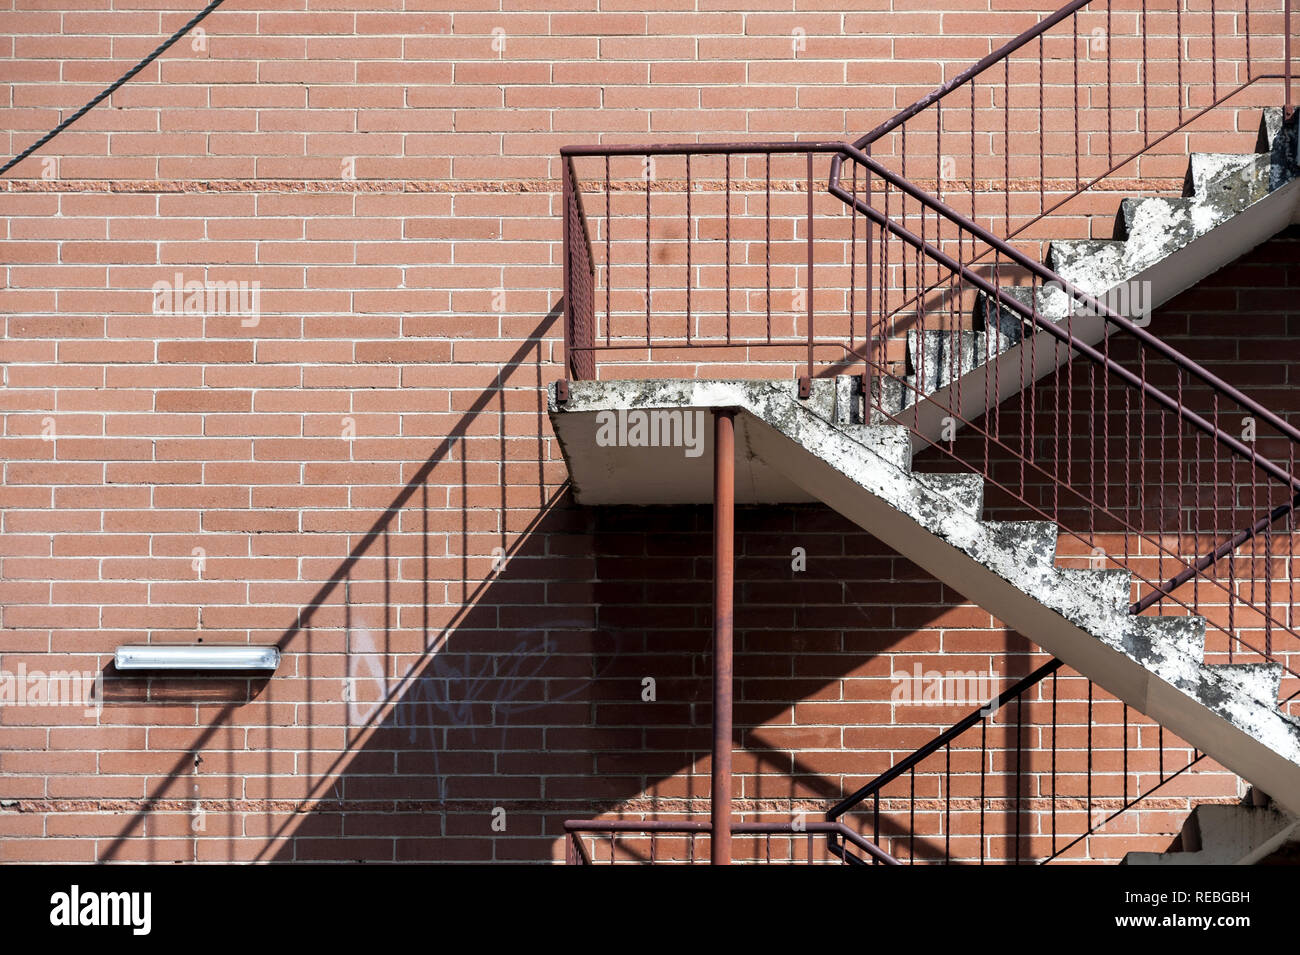 Concrete stairs with red metal railings against a red brick wall creating a strong diagonal shadow pattern Stock Photo